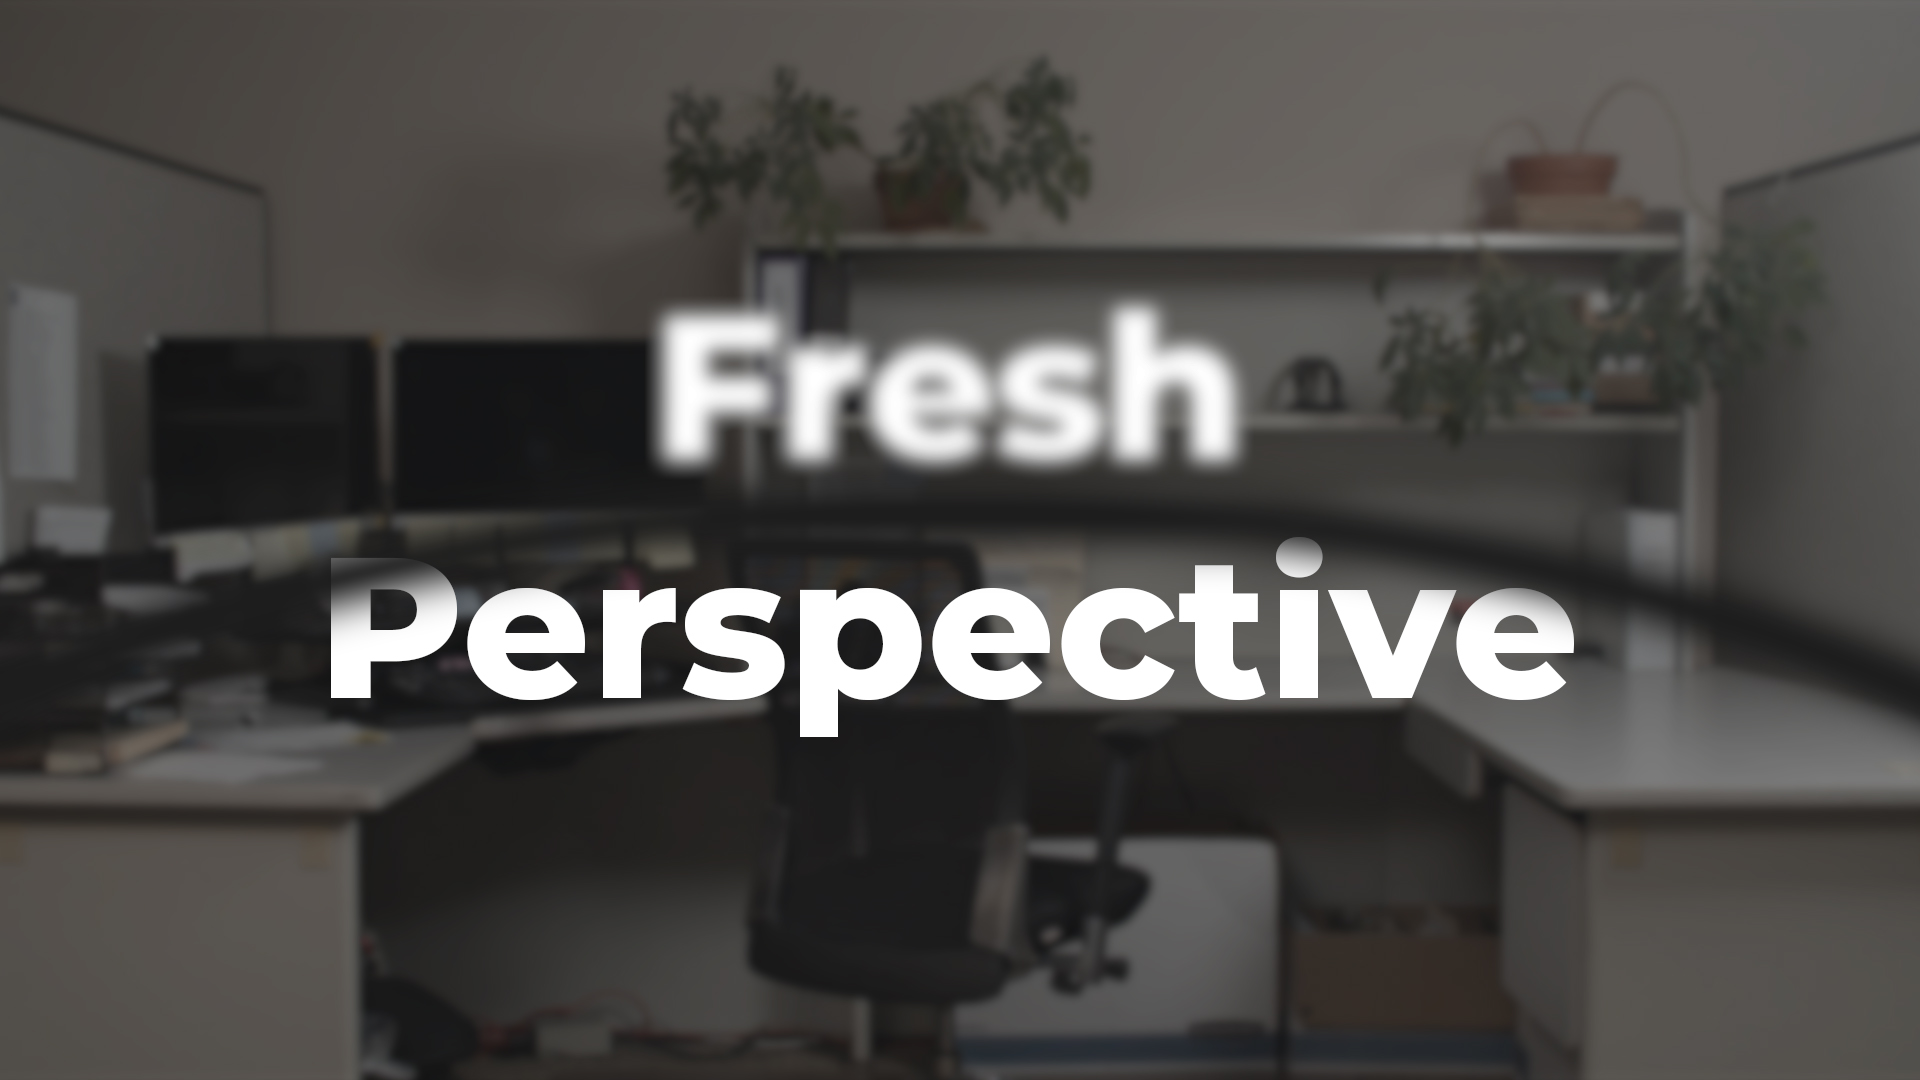 Fresh Perspective - My Rode Reel 2020